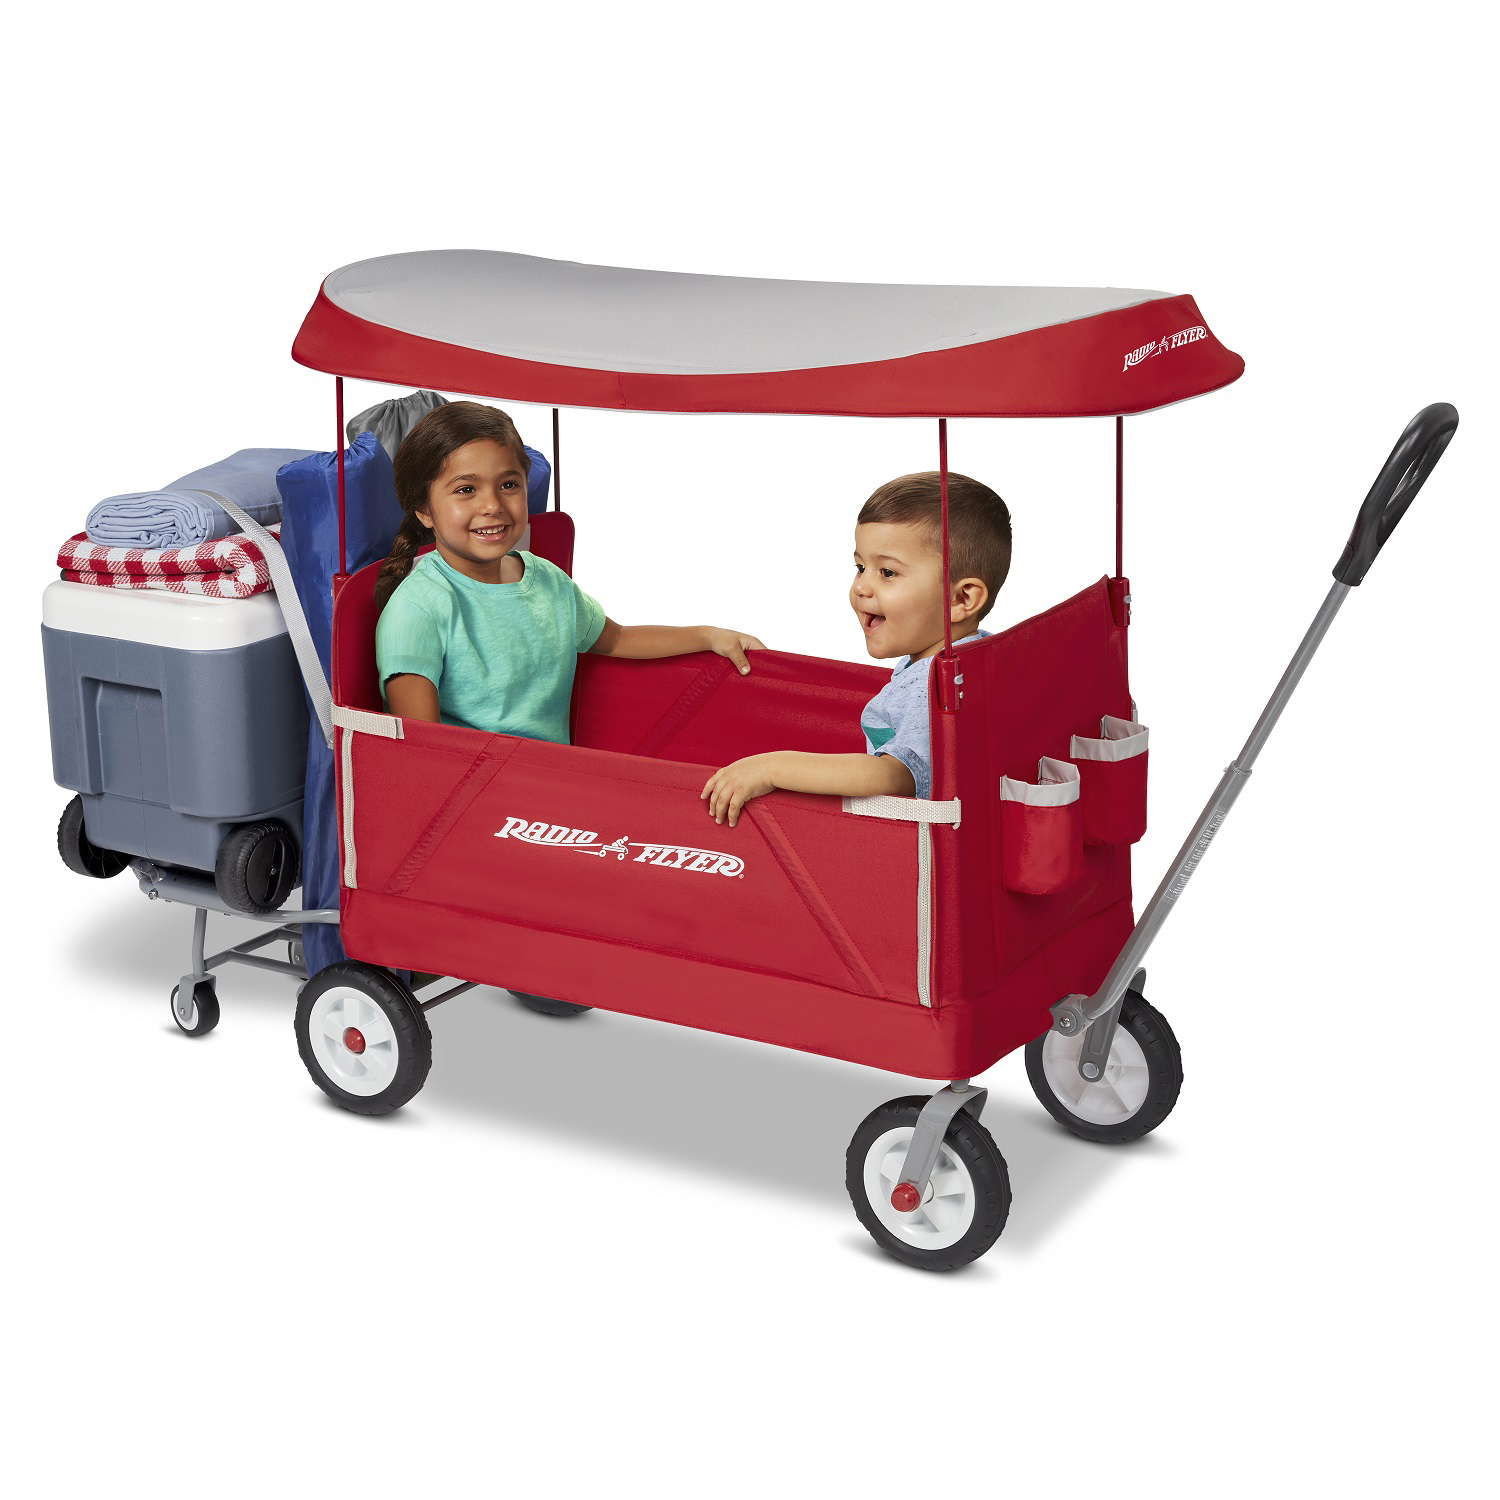 Radio Flyer 3-in-1 Tailgater Wagon with Canopy